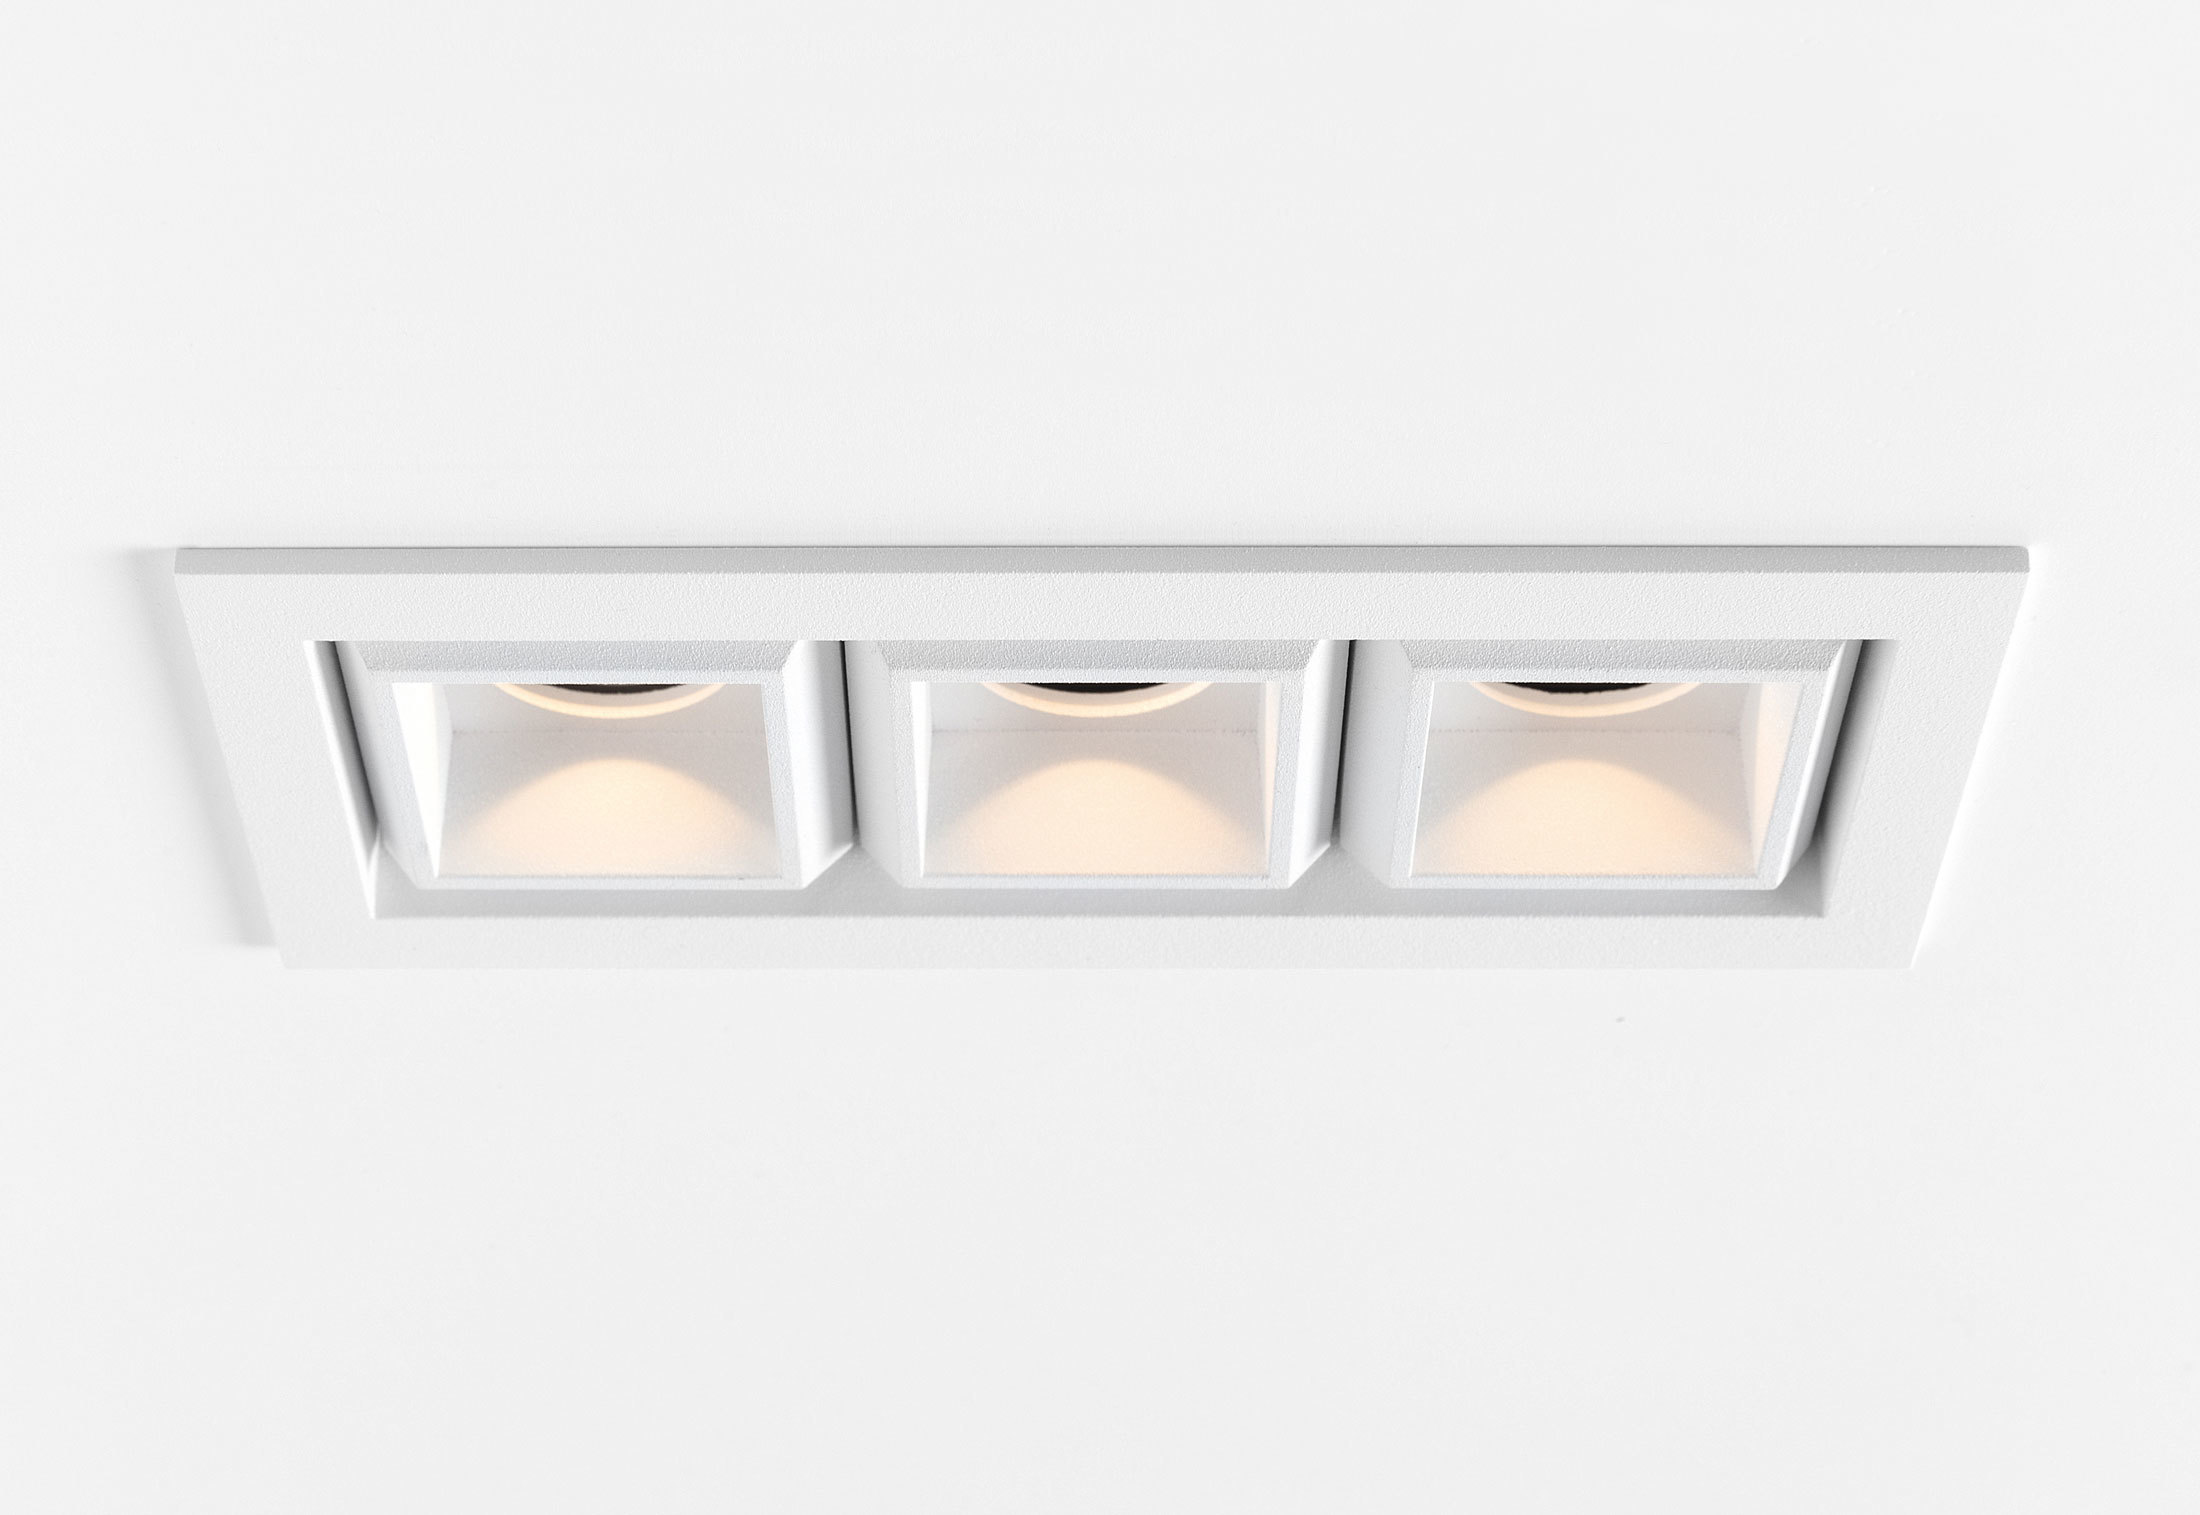 Qbini LED built-in light by Modular Lighting Instruments ...